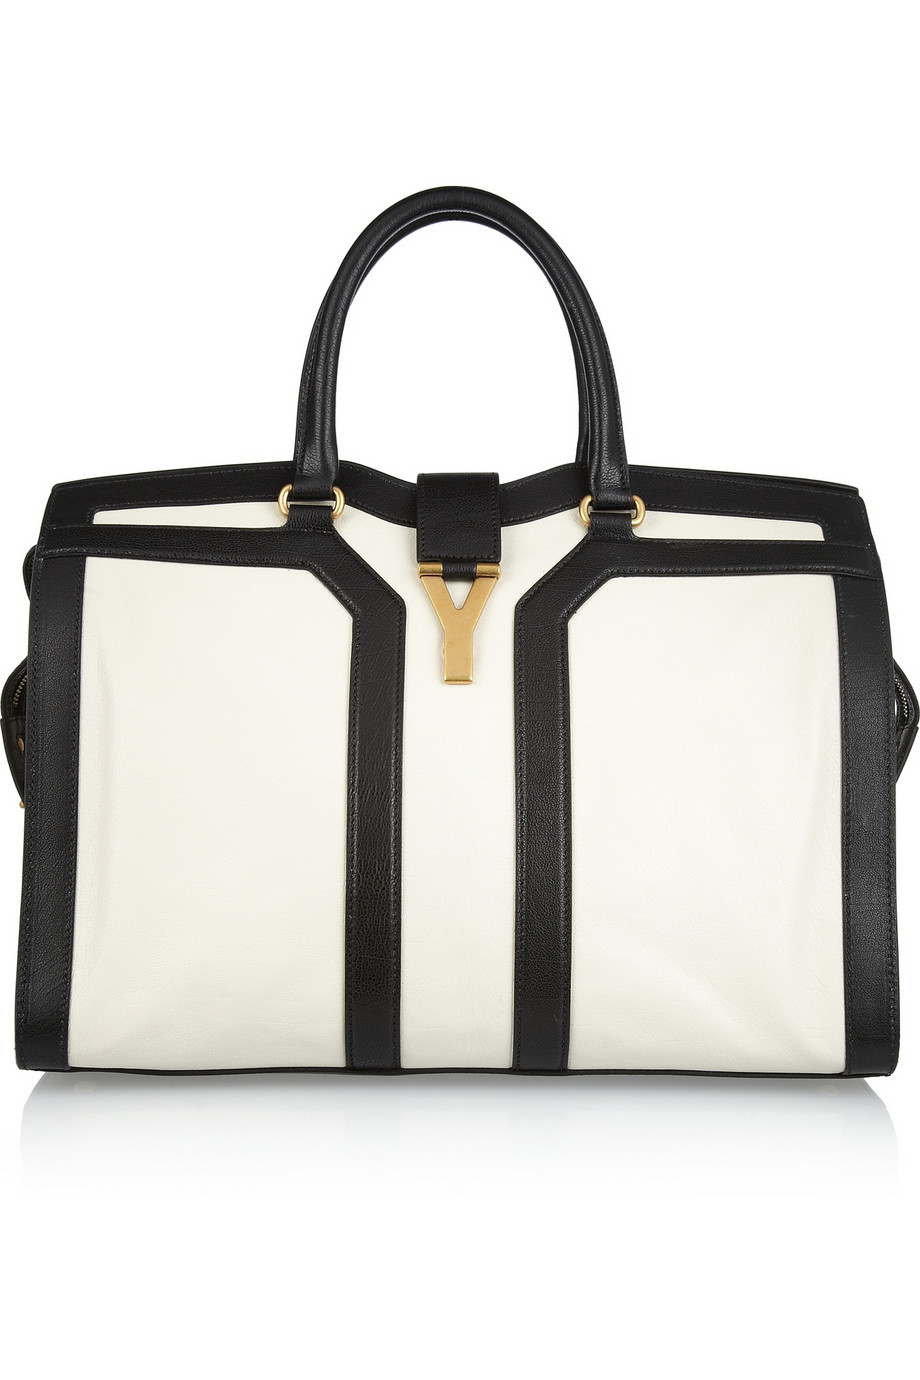 Saint laurent Large Cabas Chyc Leather Tote in White (black) | Lyst